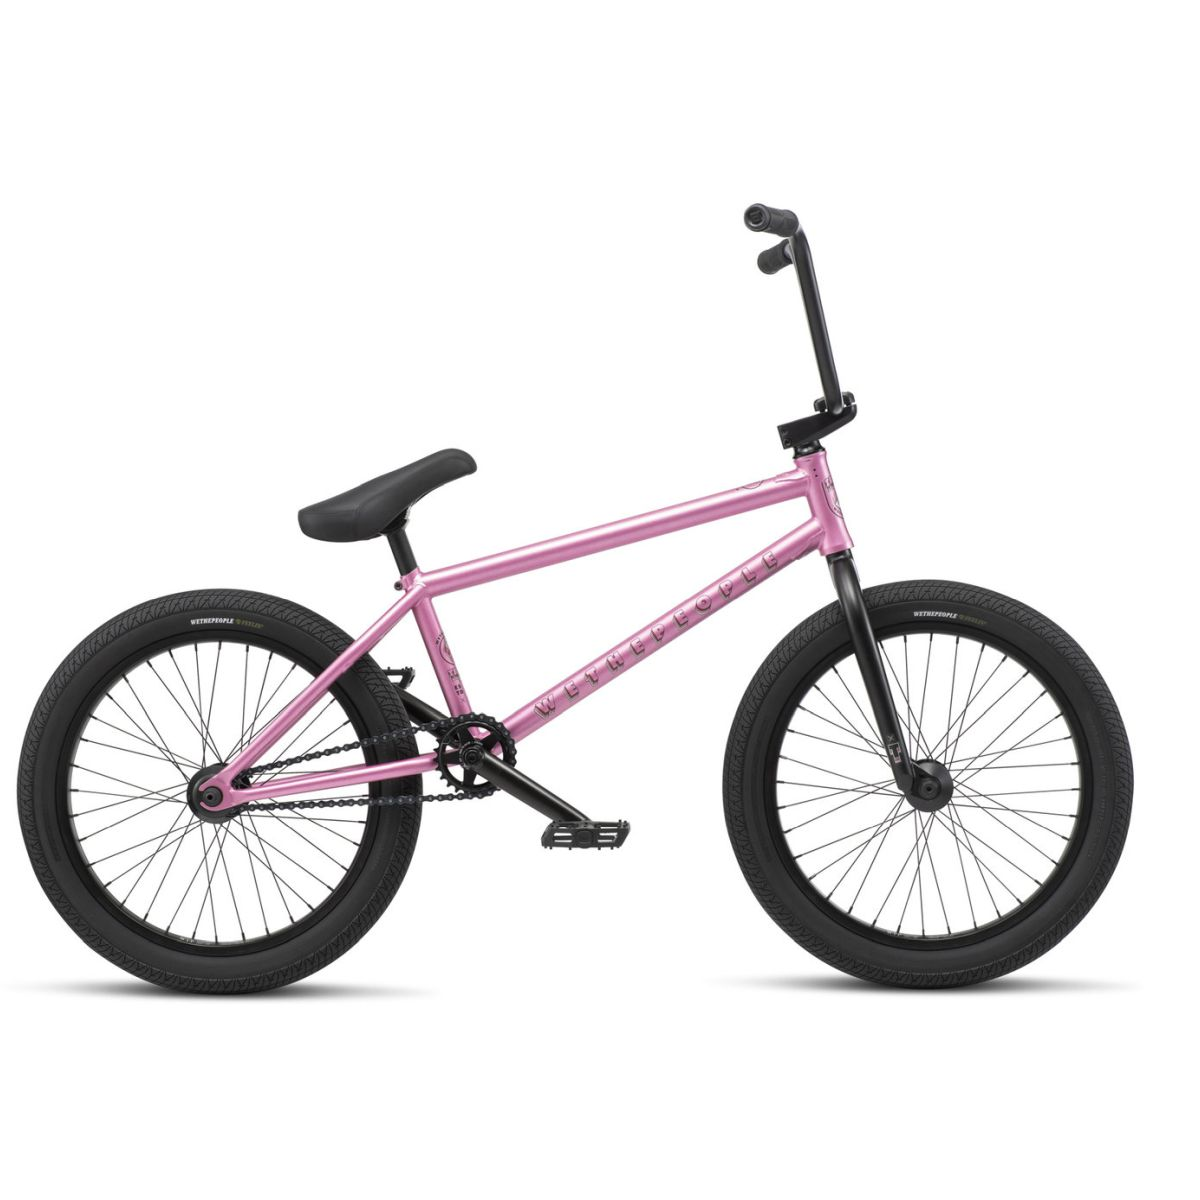 Rower BMX WTP Trust 9 Rose Gold Freecoaster